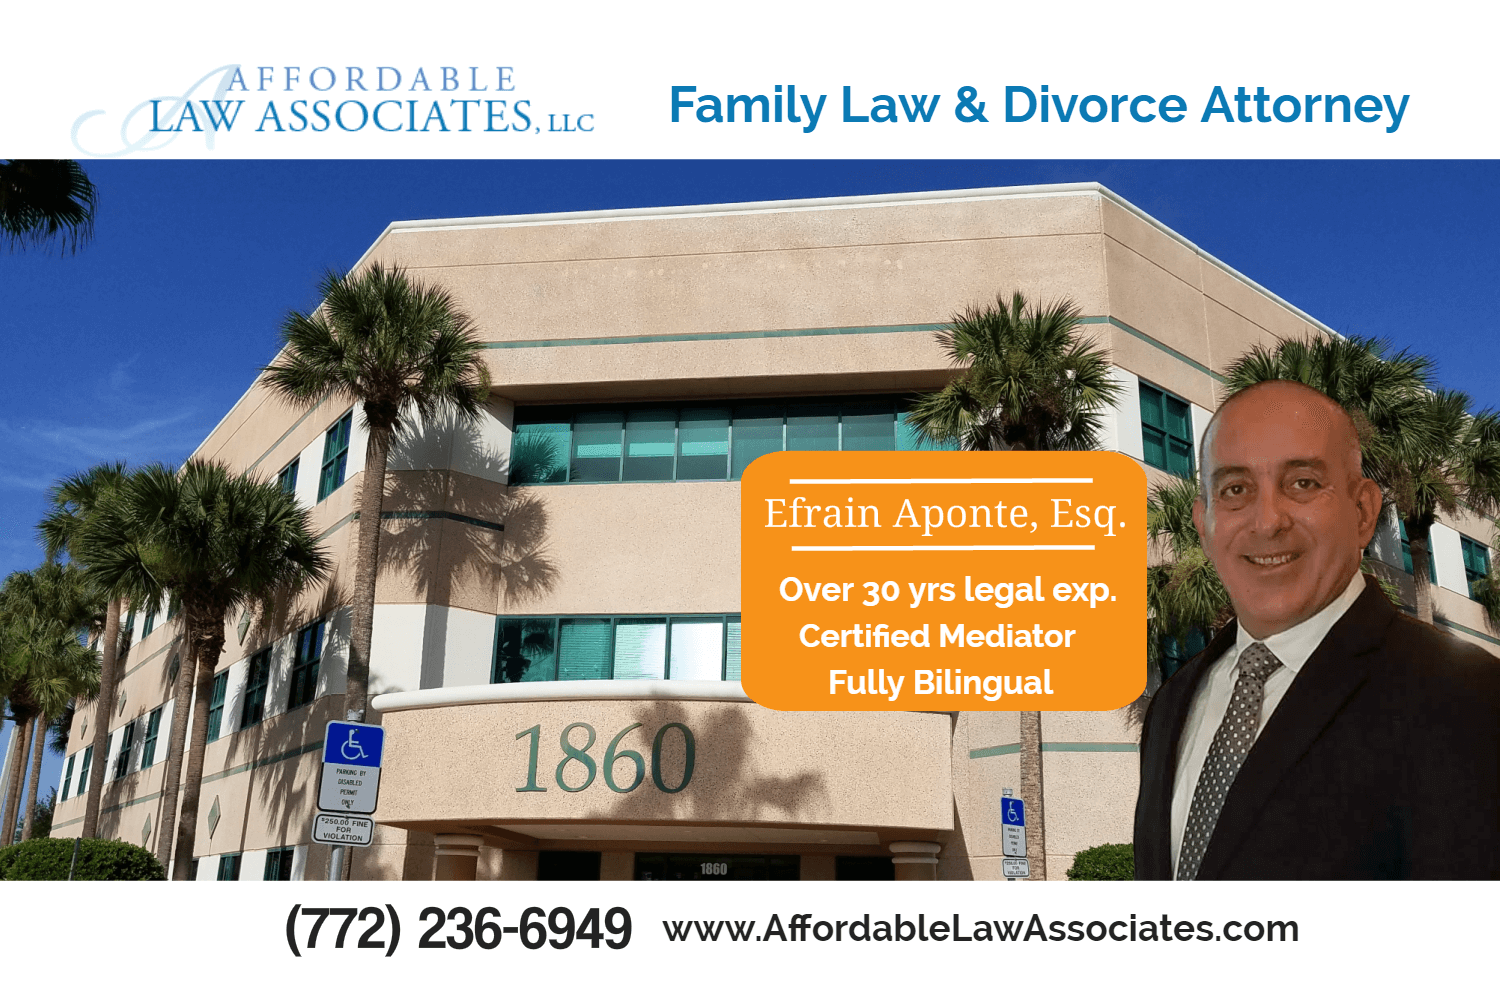 Affordable Law Associates – Family Law